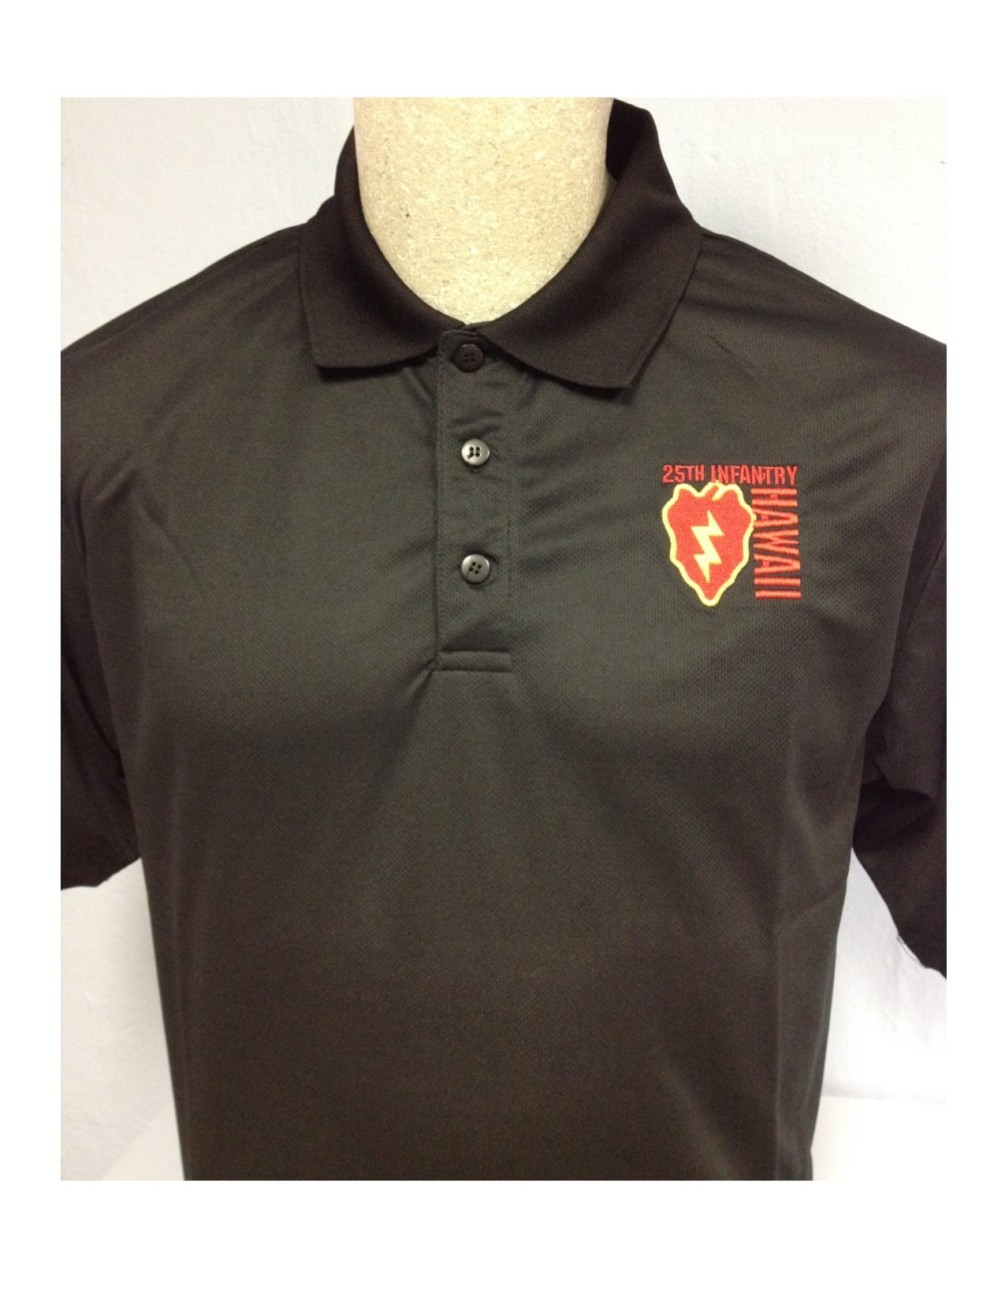 25th Infantry Division Polo in PlayDry